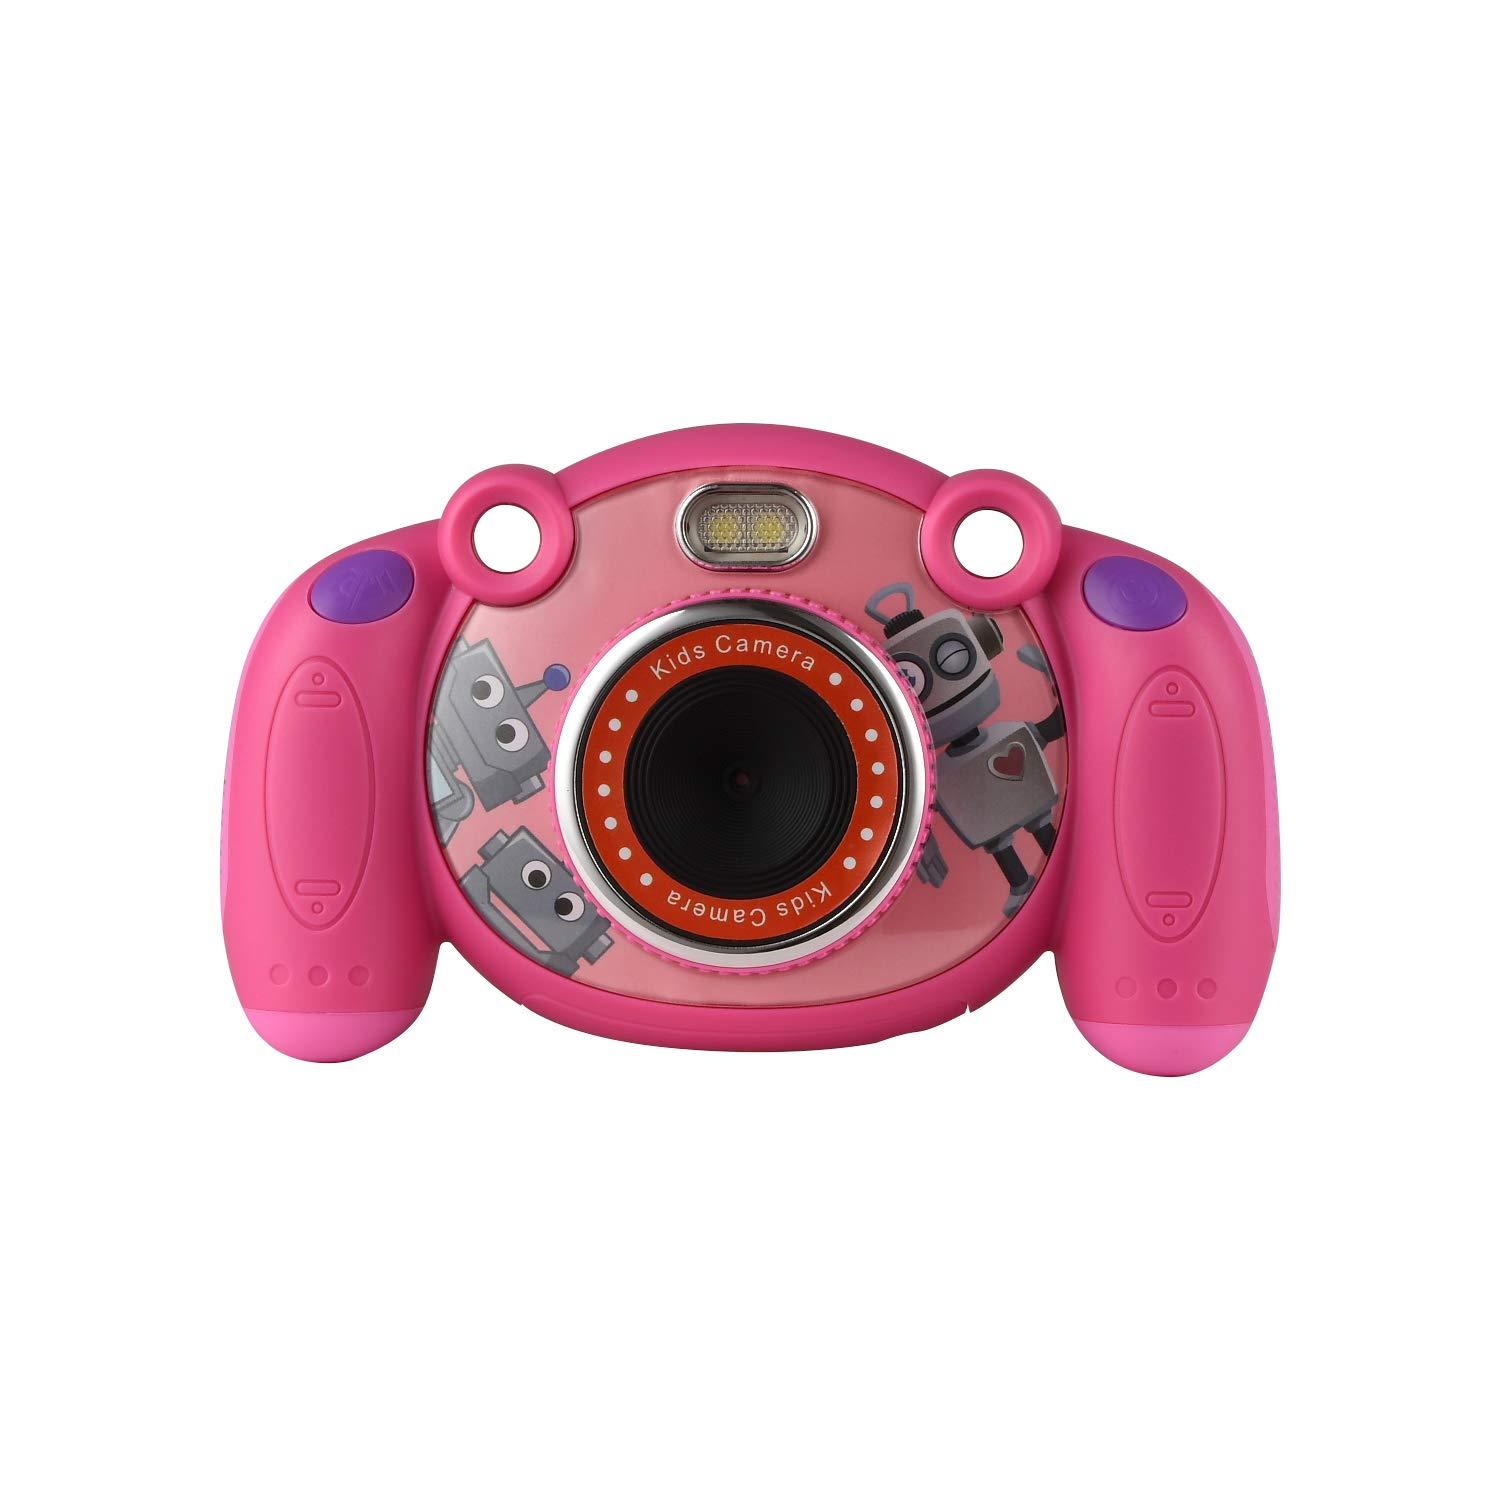 eyesen Kids Camera Digital Child Camcorder Shockproof Mini Camera with LED Flash Light and 2.0 Inch Sreen, Gifts for 4-8 Year Old Girls